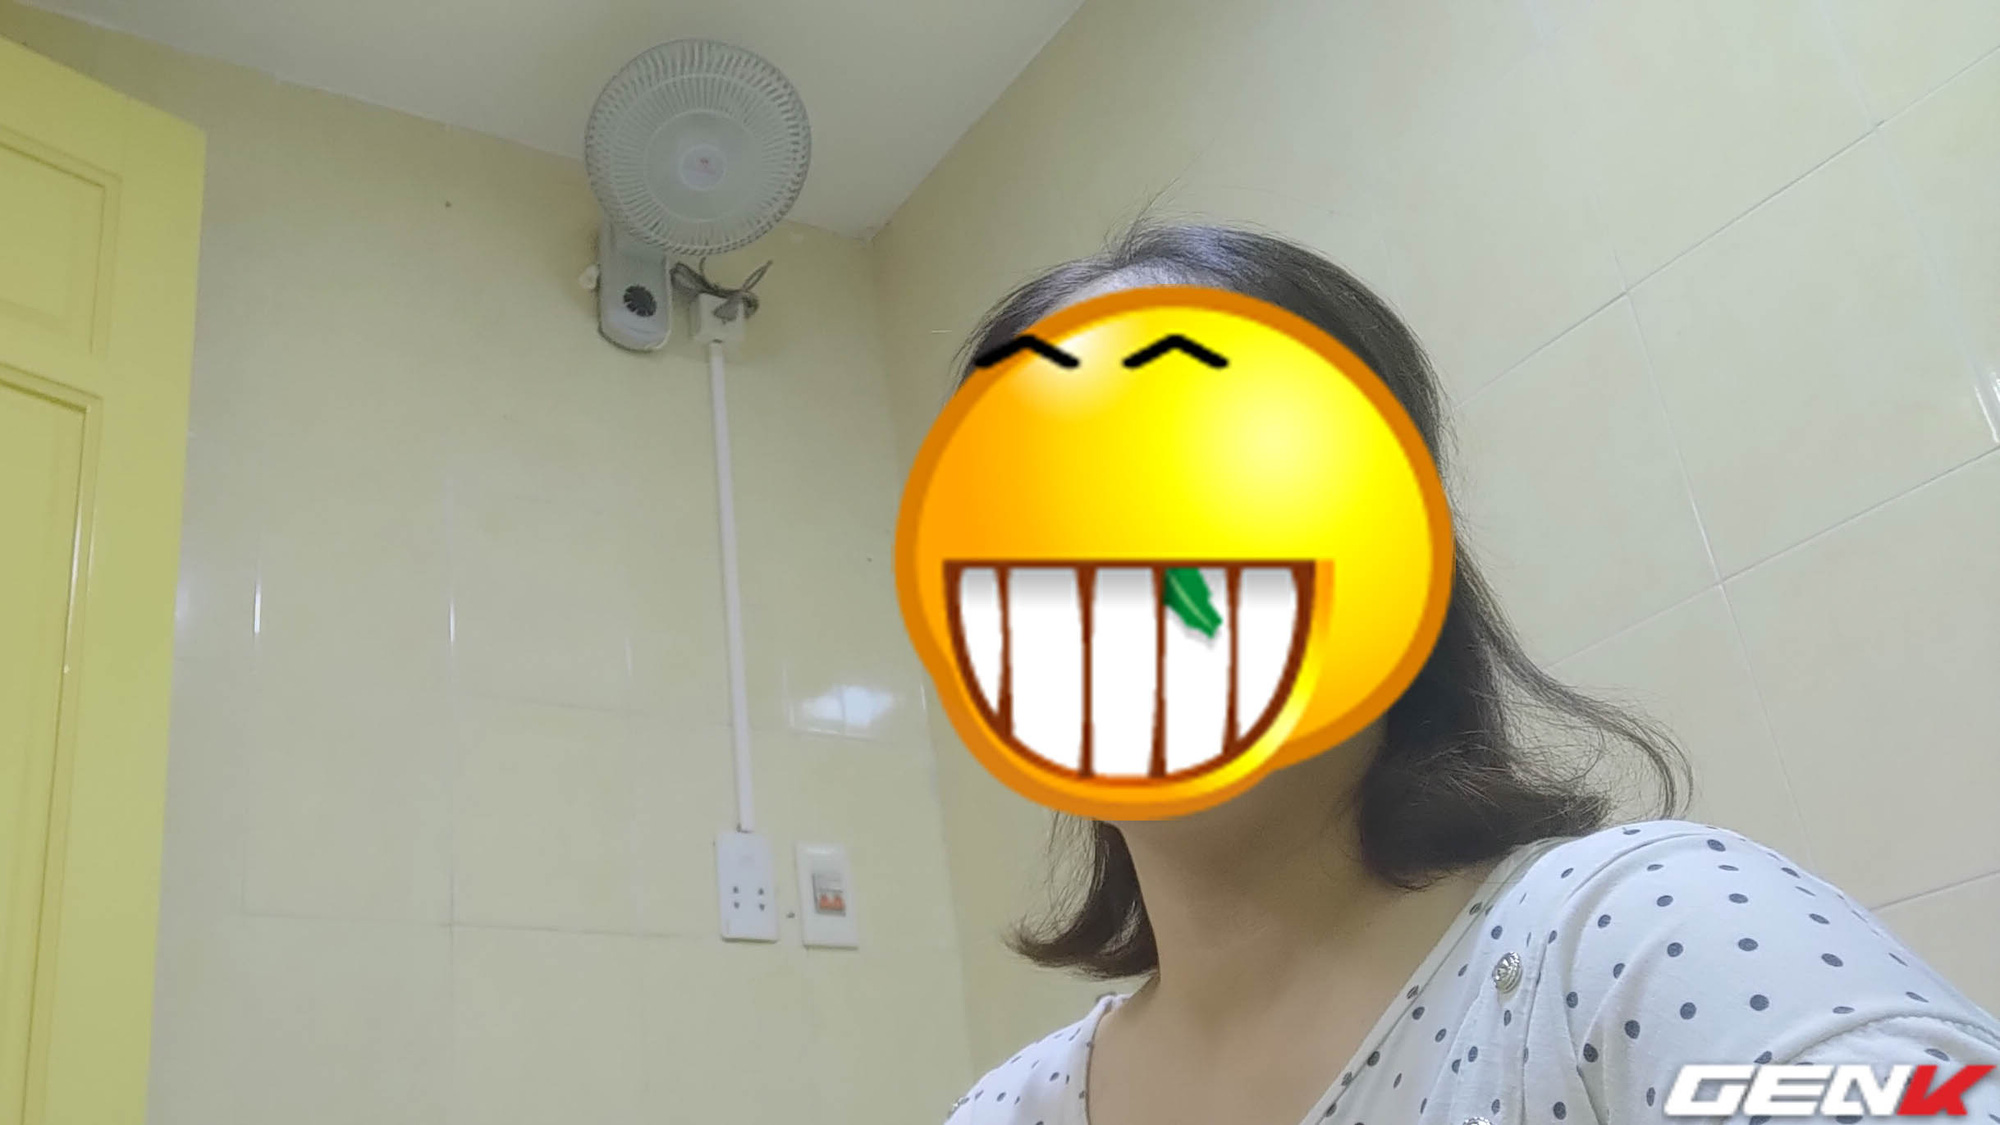 The toilet is too hot, a female friend shared how to install a fan to cool herself, which anyone can do - Photo 17.